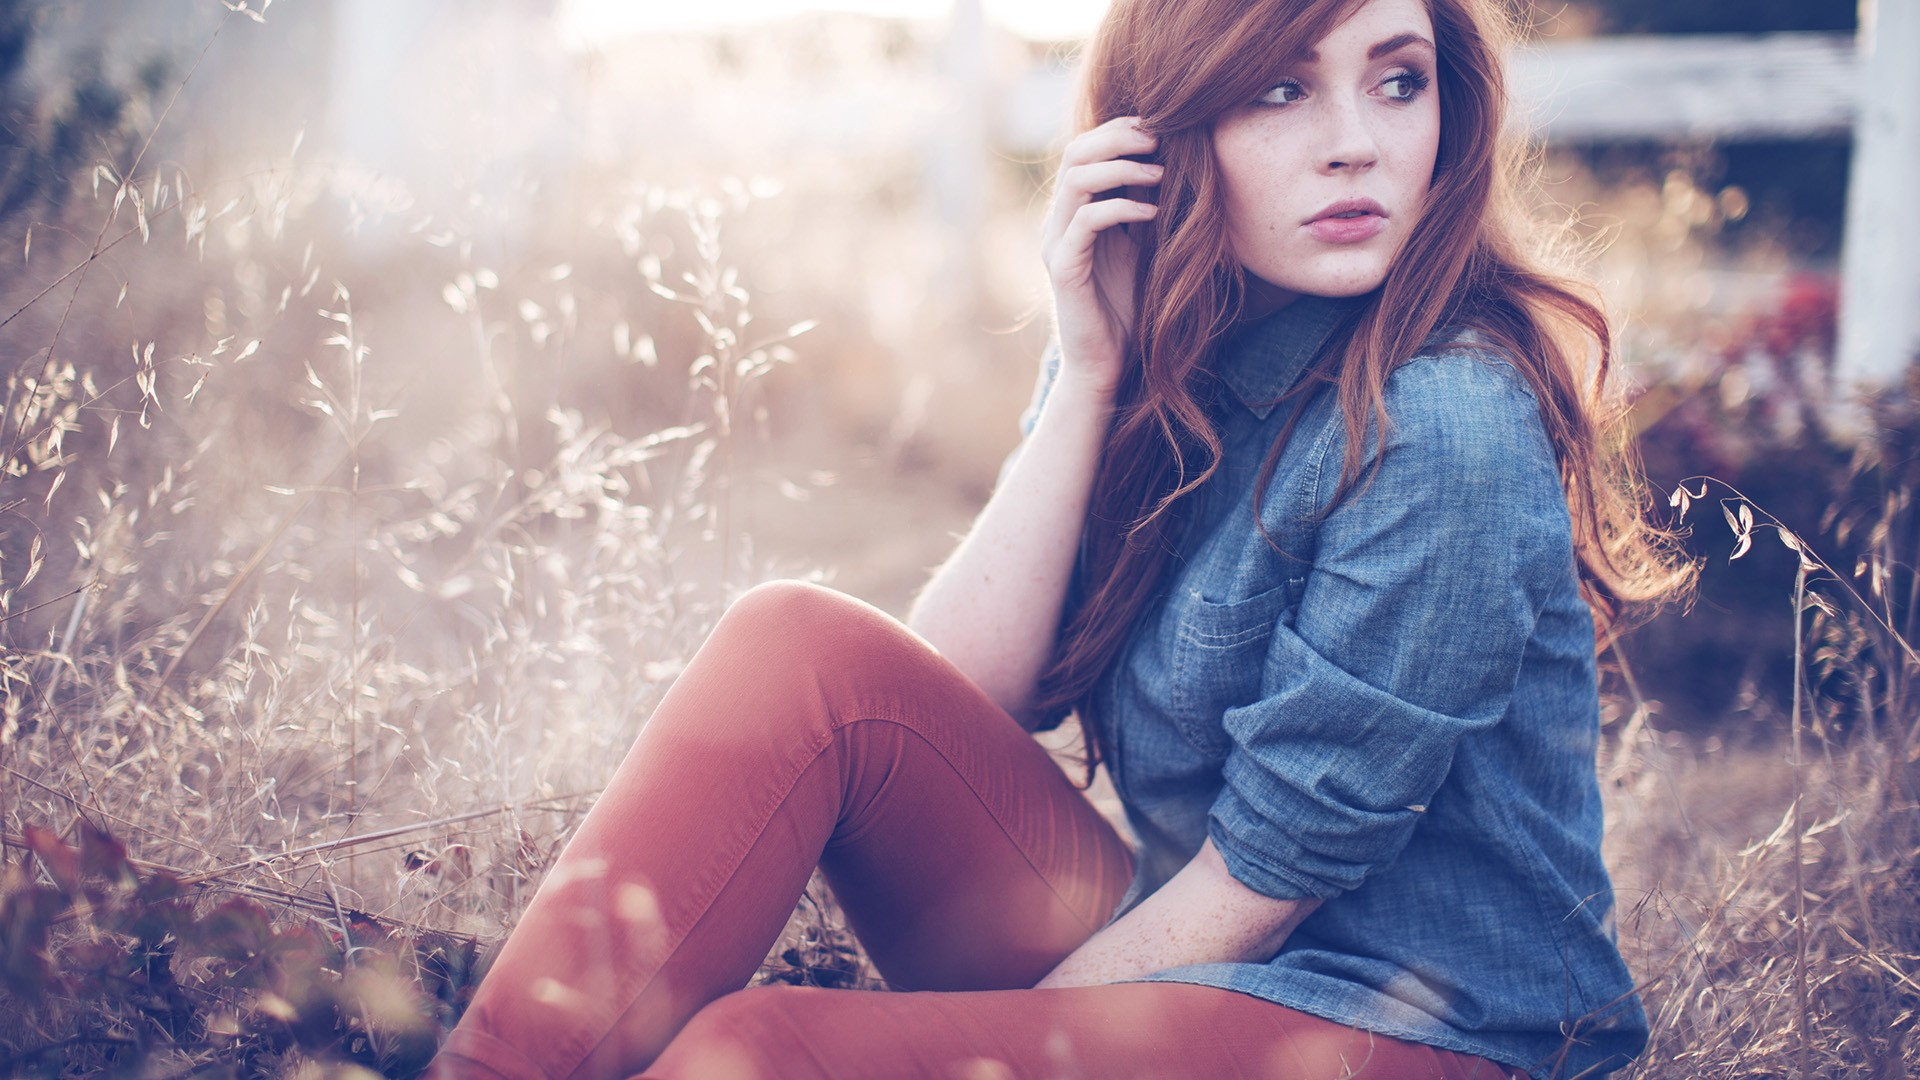 People 1920x1080 redhead women freckles women outdoors photography bokeh model grass depth of field jeans field looking away hands in hair sitting long hair outdoors touching hair